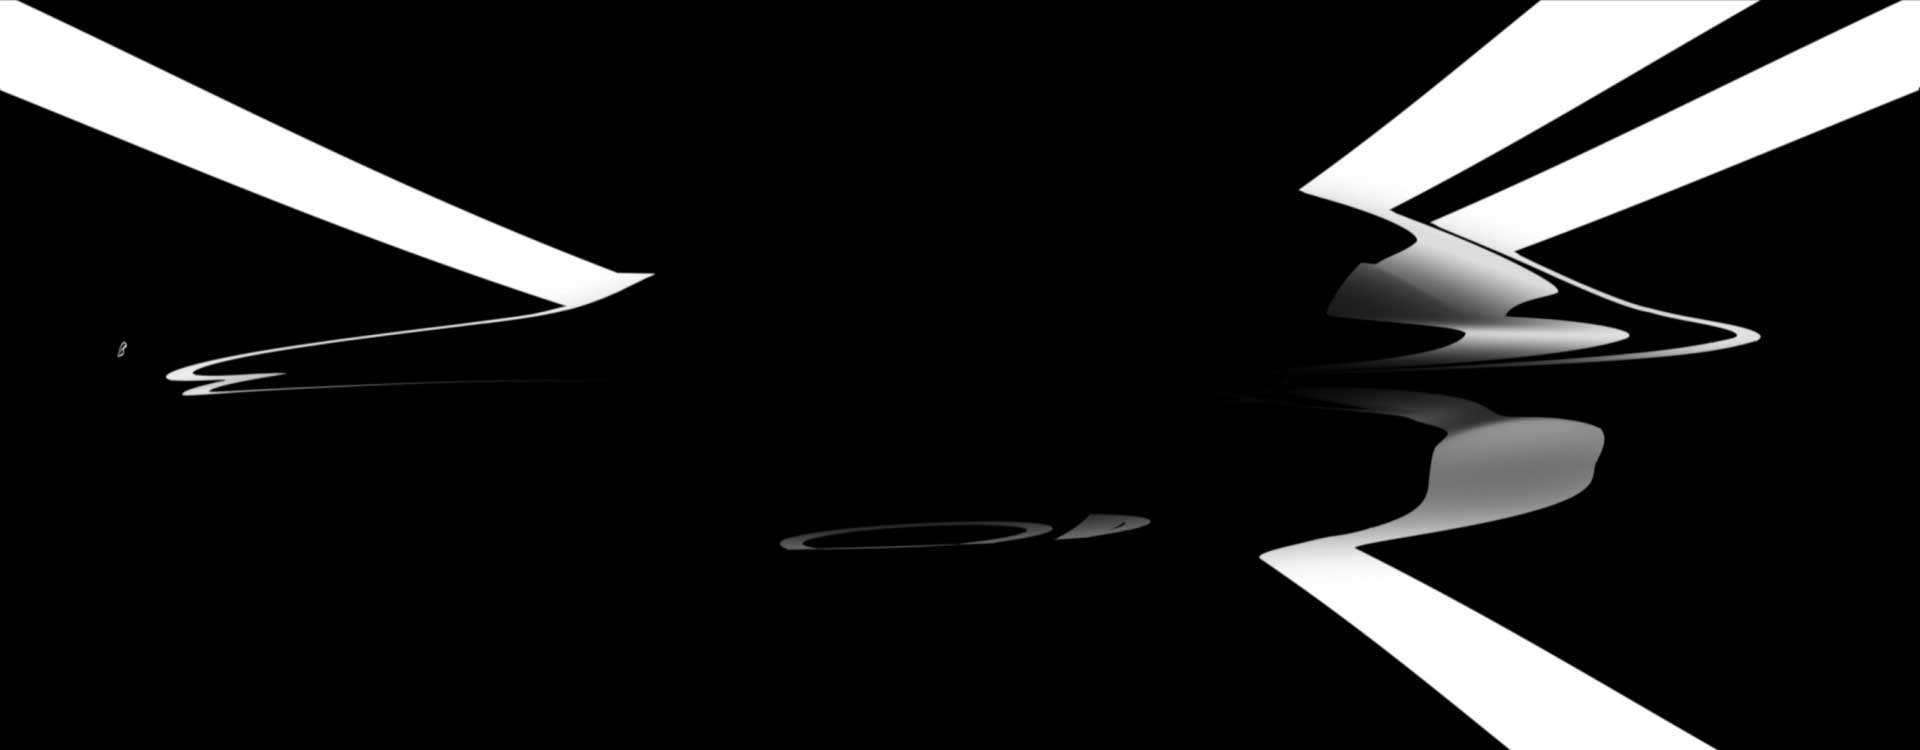 Silhouette shapes. Still from Mercedes-Benz Commercial.